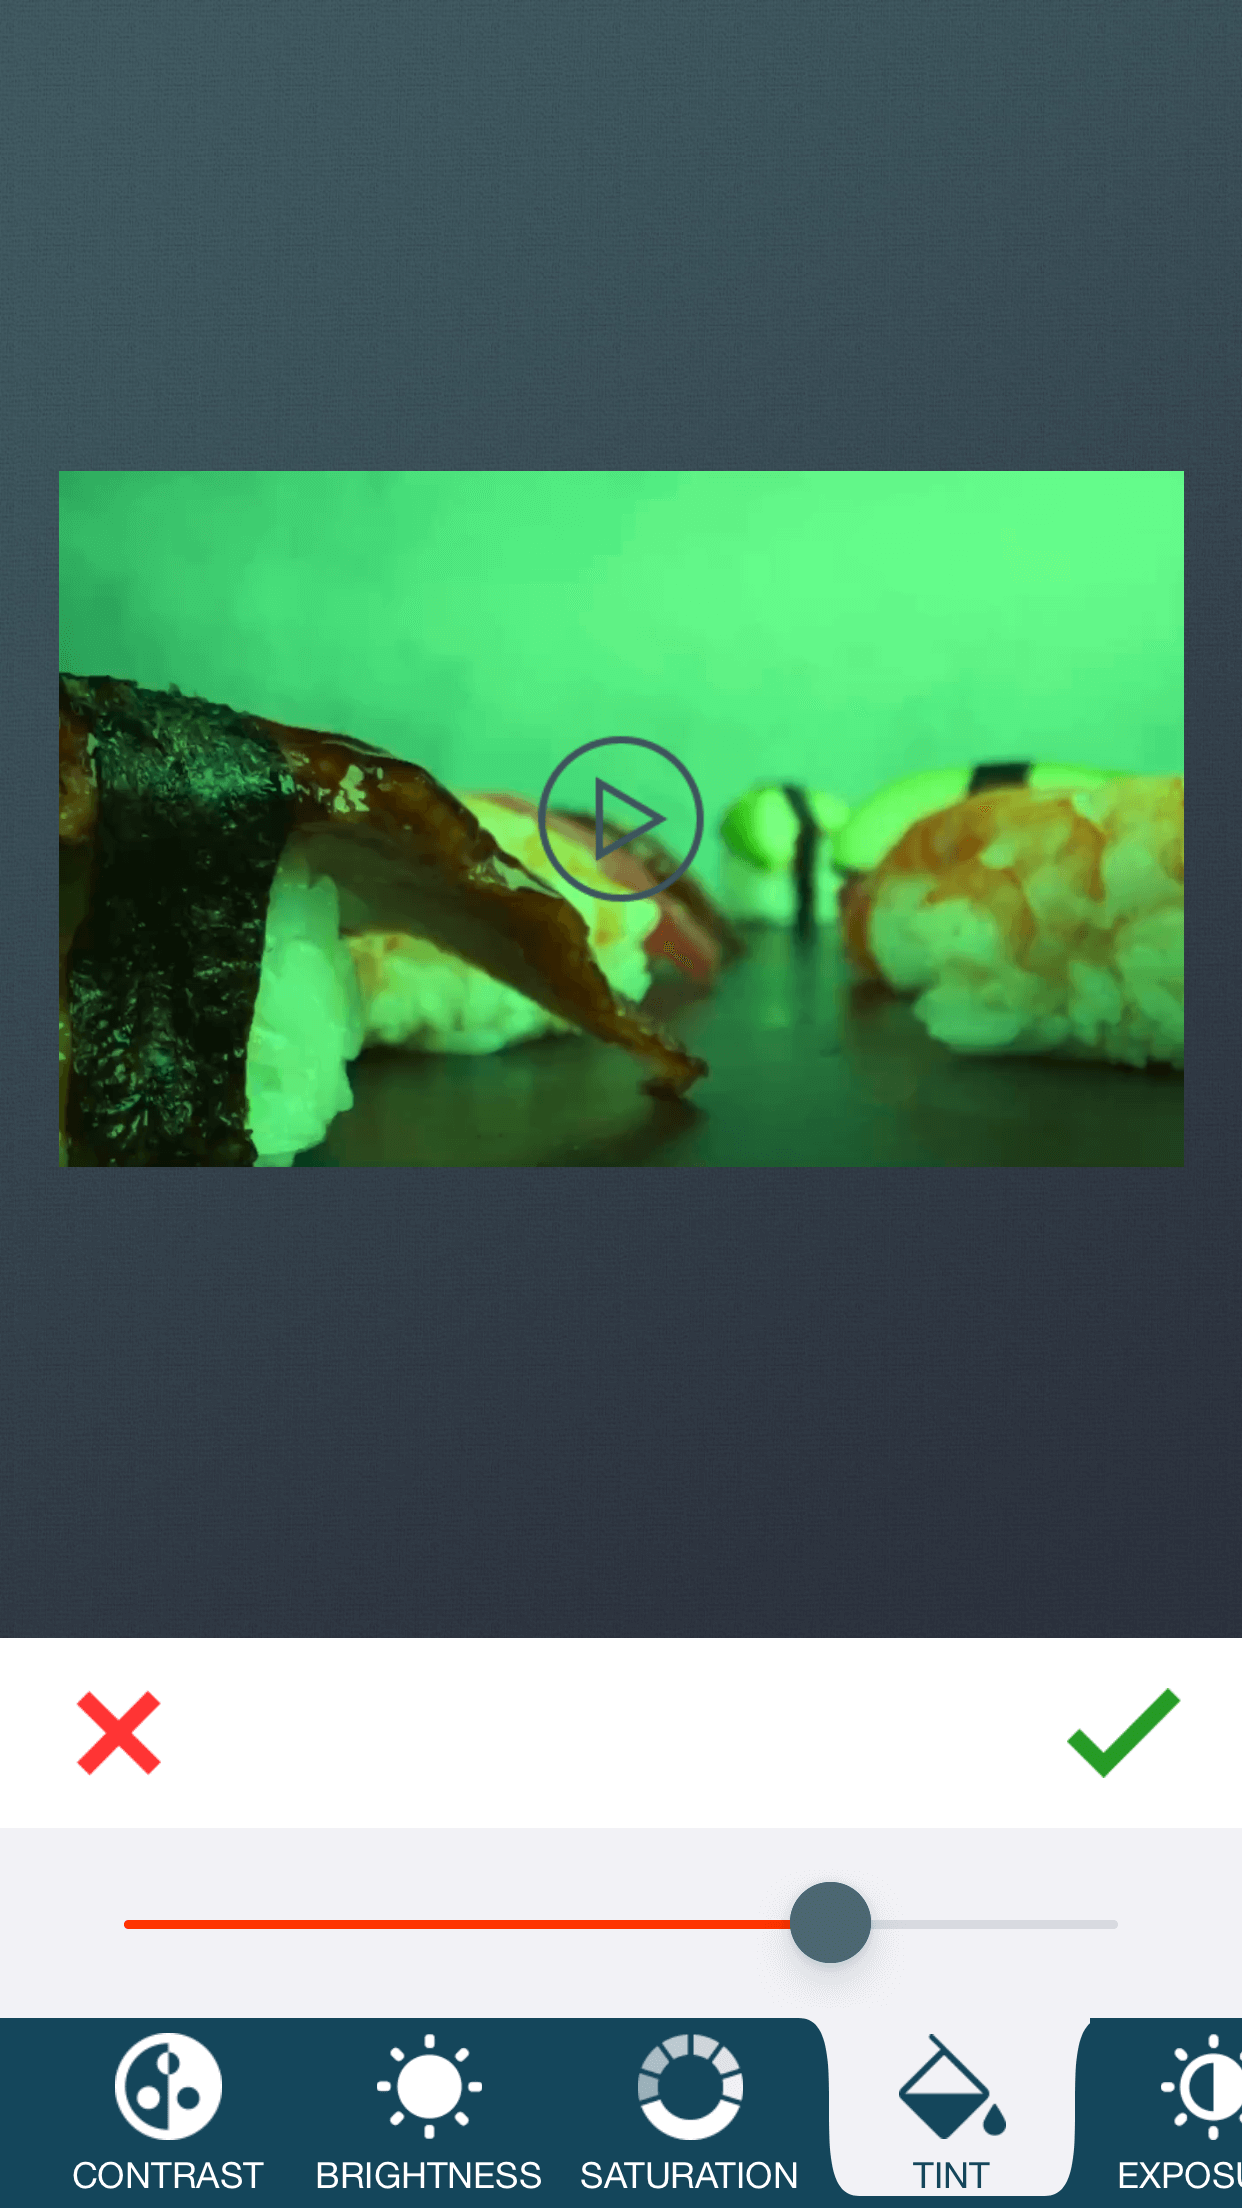 Change video tint with zShot video editor app.